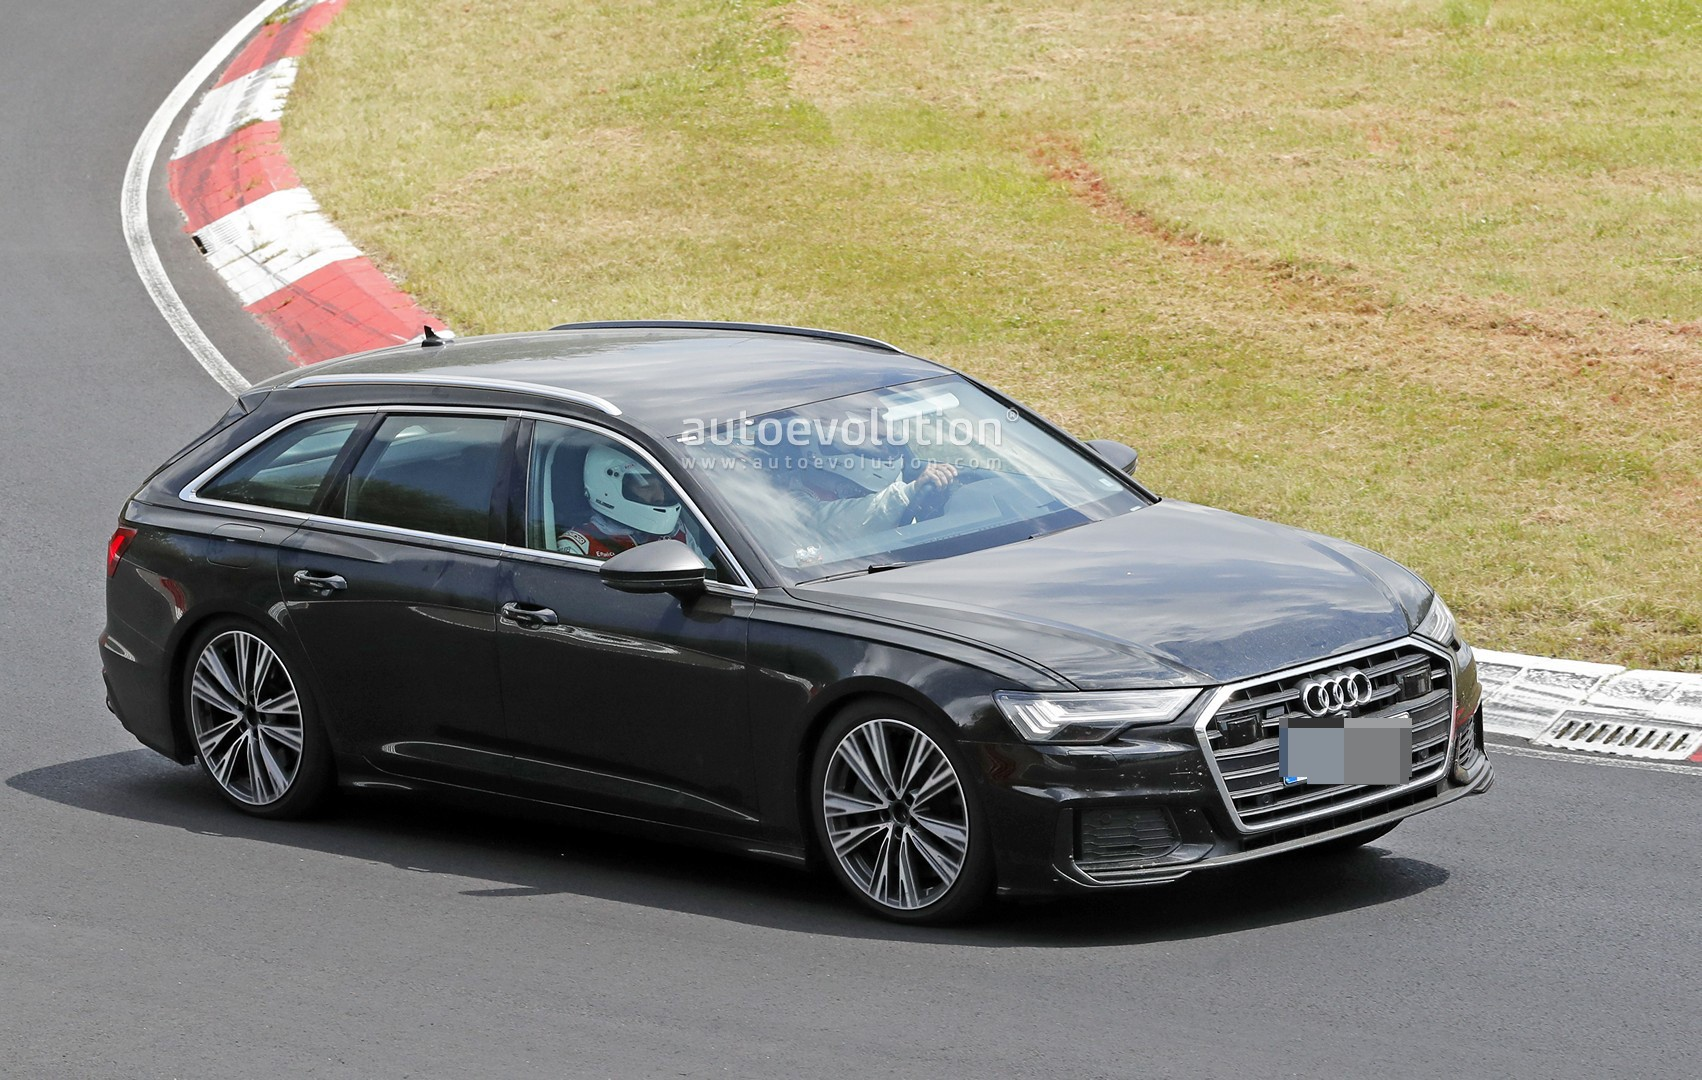 2020 audi s6 avant leans hard into corners at the. Black Bedroom Furniture Sets. Home Design Ideas